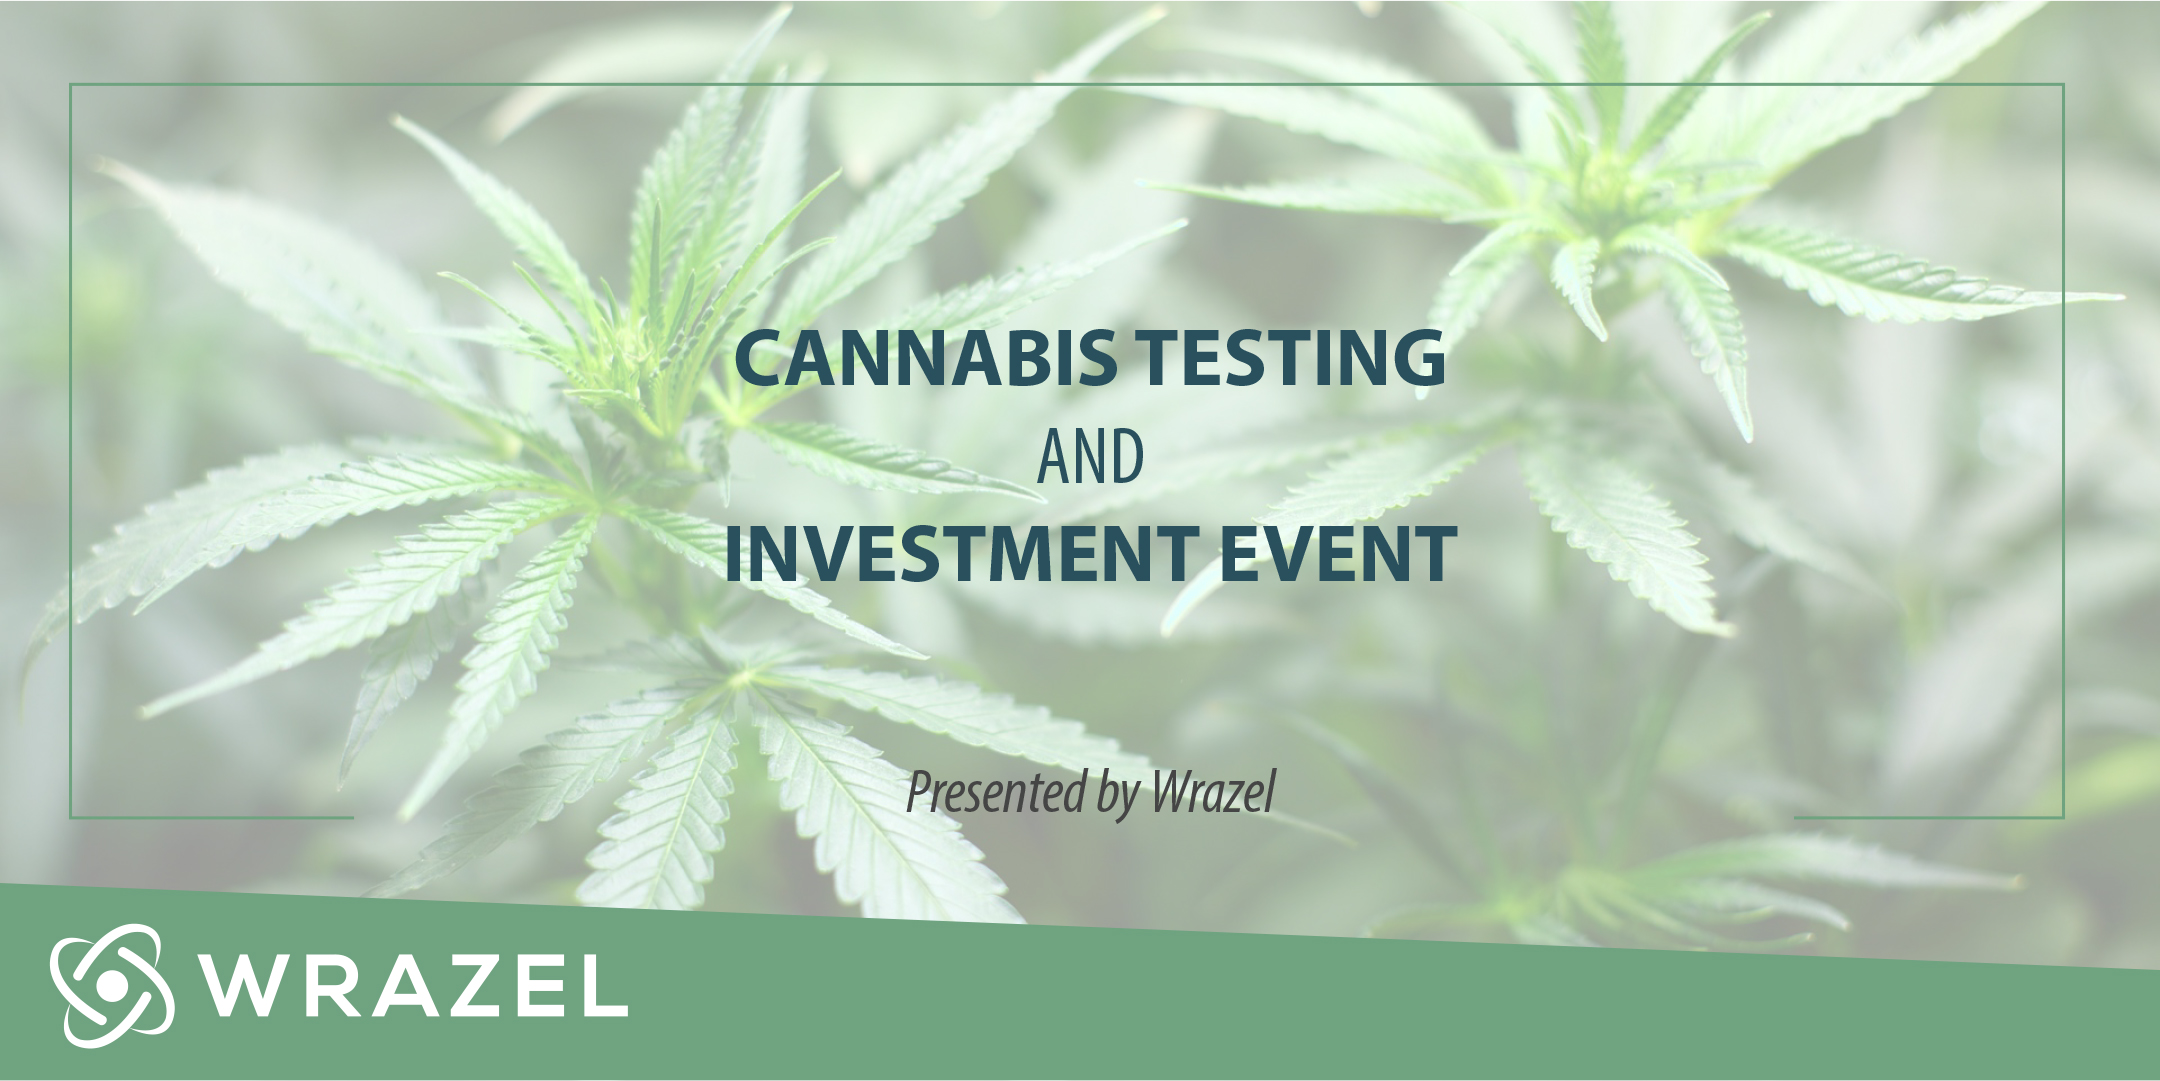 Cannabis Testing and Investment Event